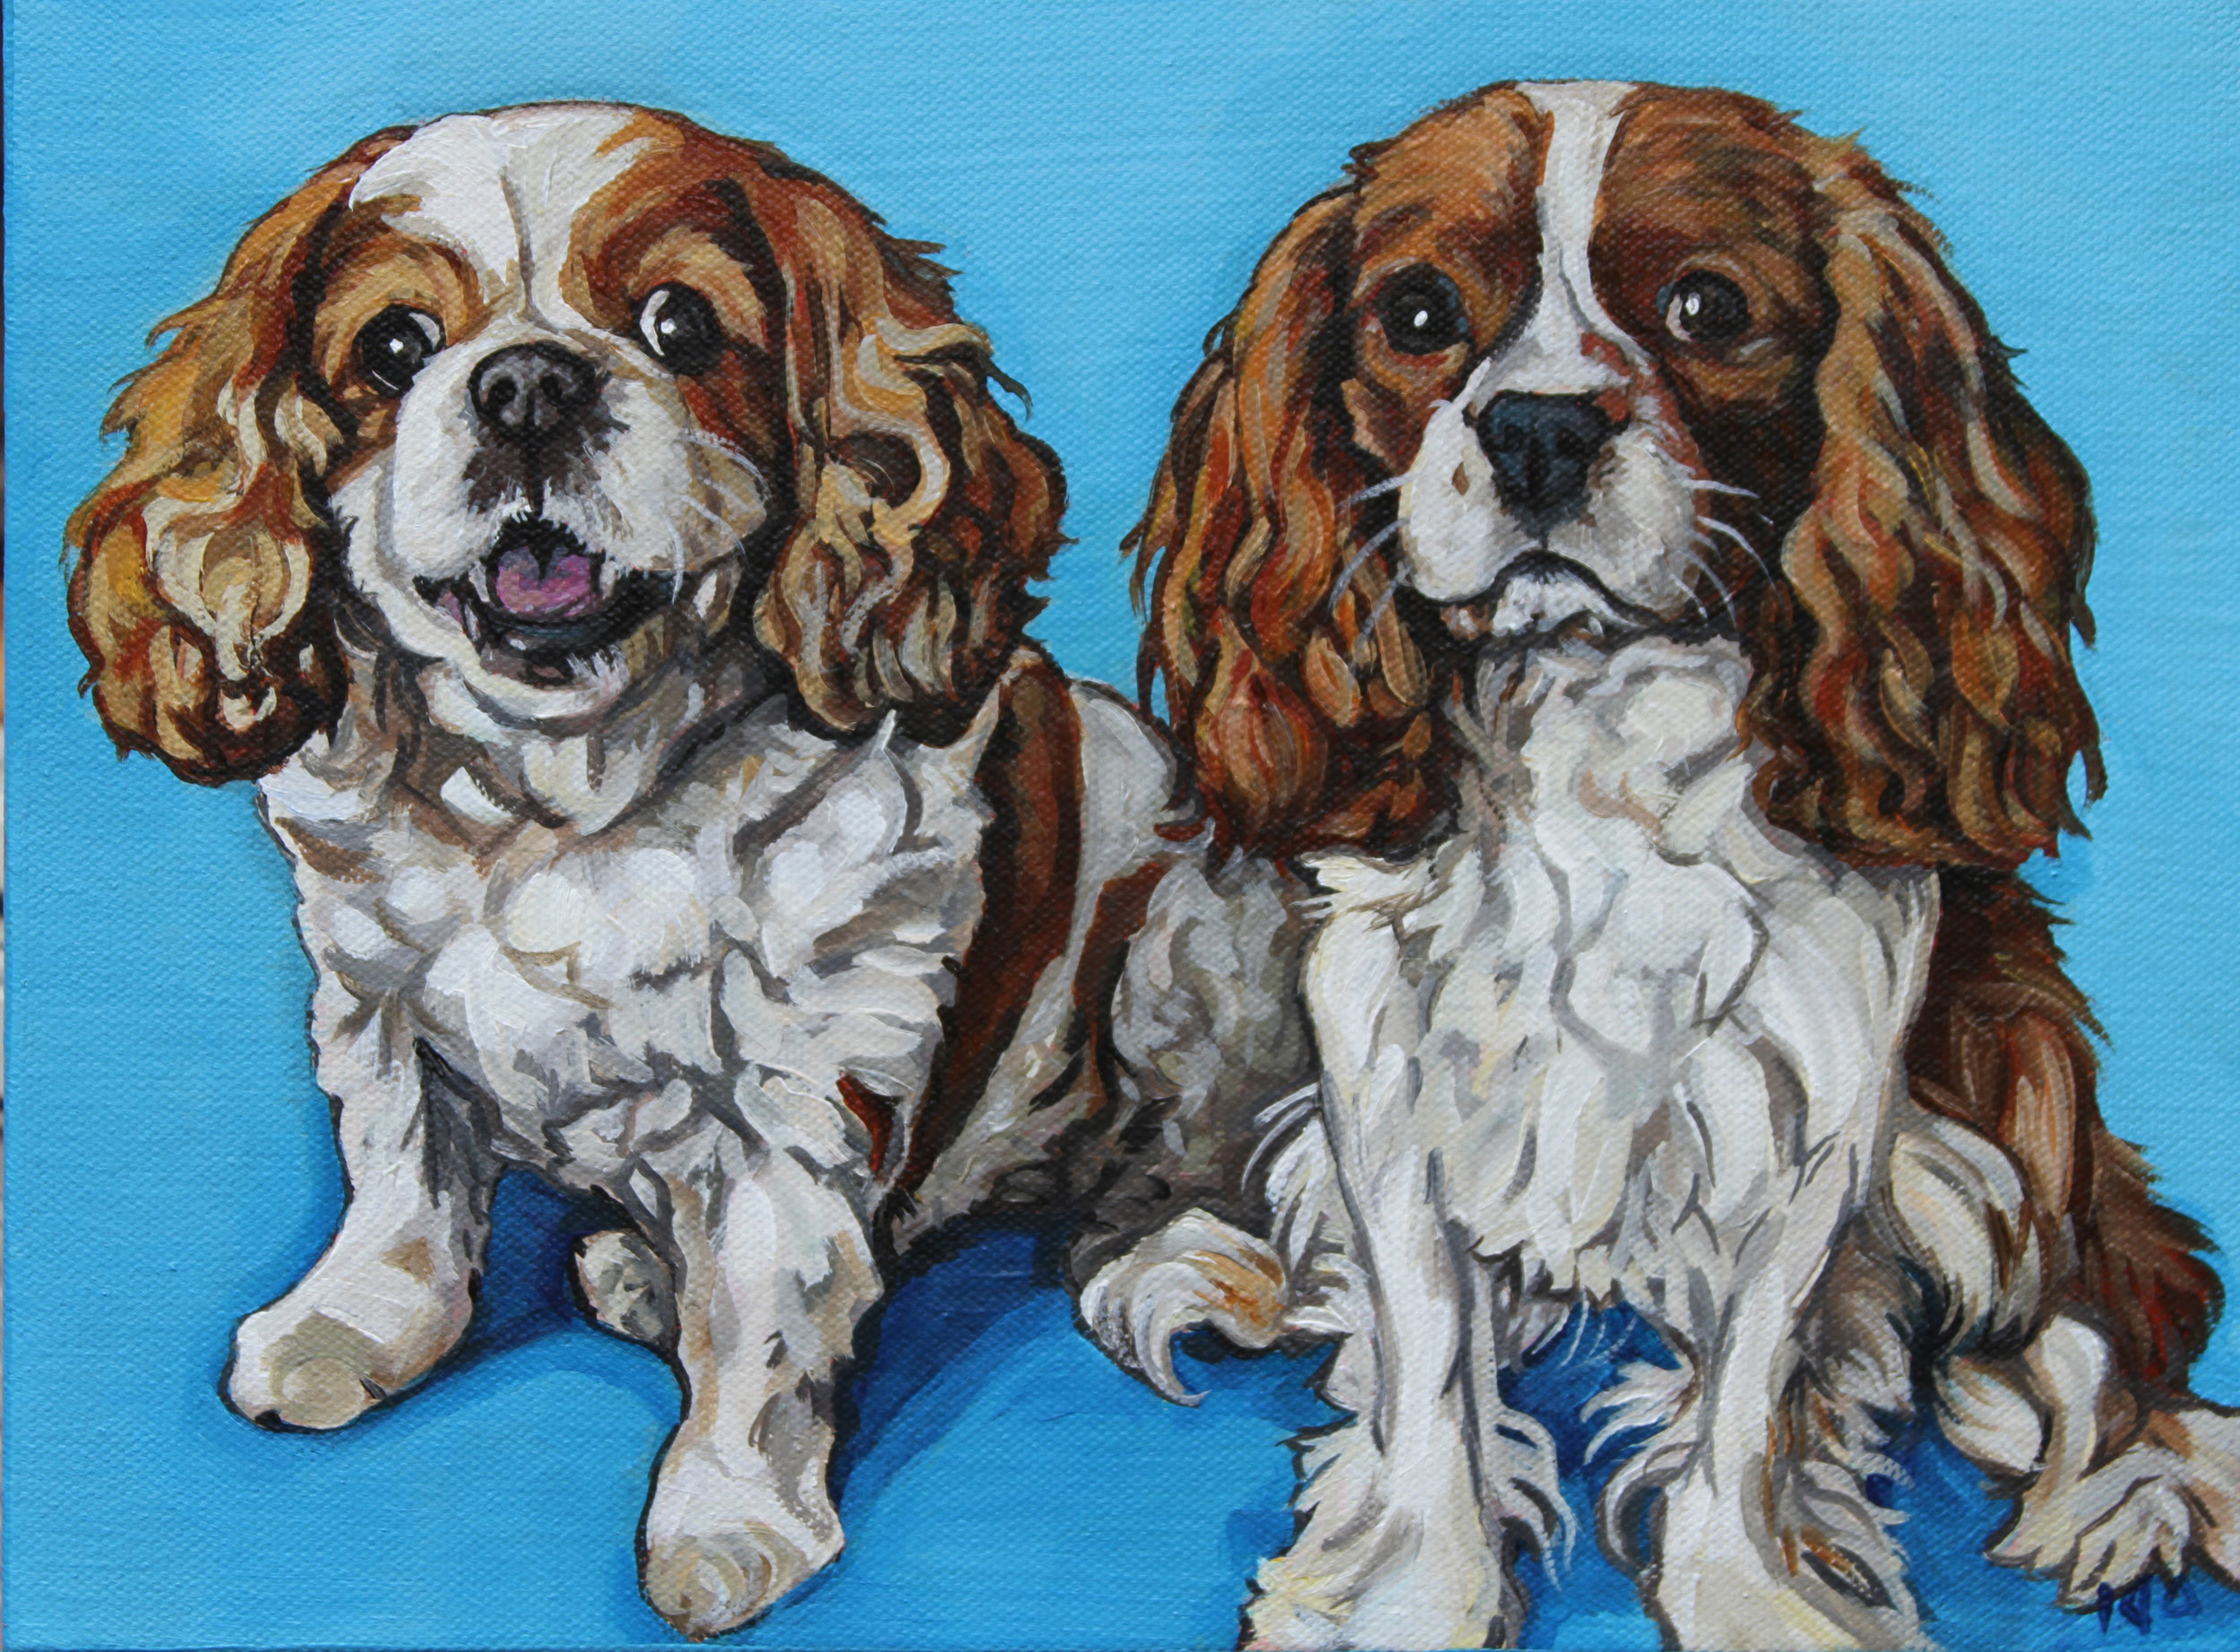 Ginger & Jasper, Acrylic on Canvas, 9x12